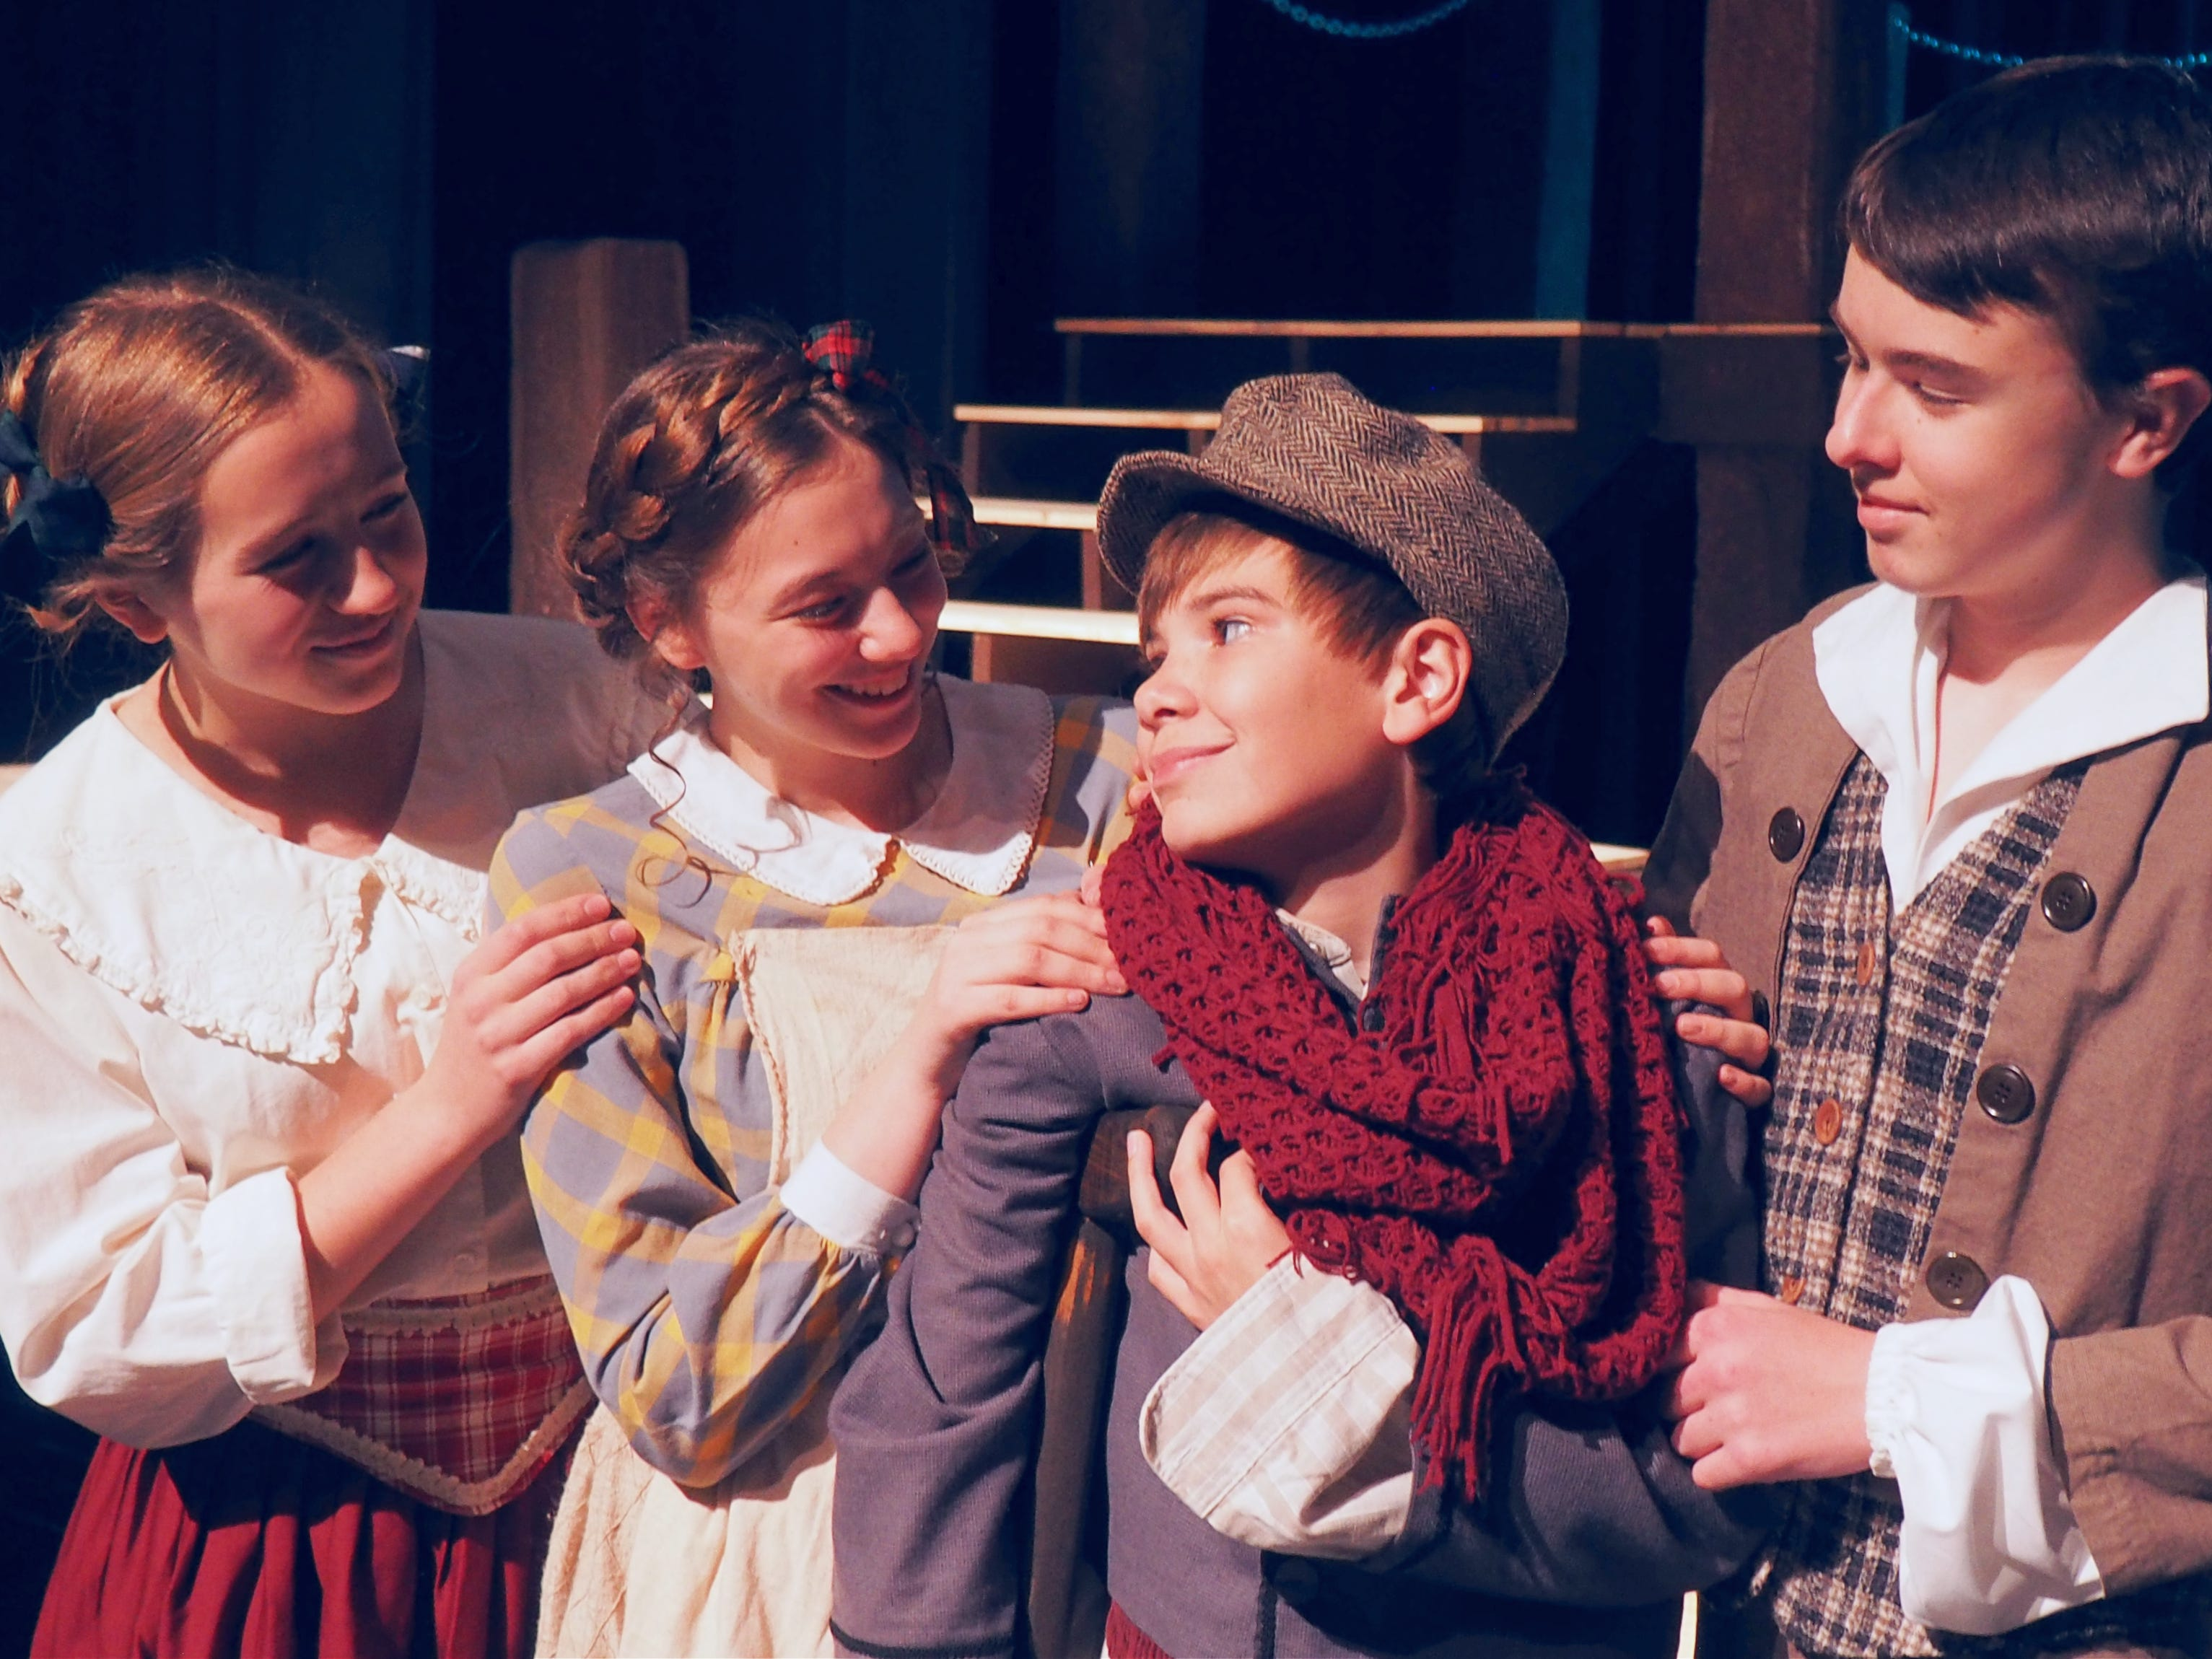 "Fond du Lac High School will present 'A Christmas Carol"" at 7 p.m. on Nov. 1 though 3, with a matinee show at 1 p.m. on Nov. 4. The musical is a stage adaptation of the Charles Dickens novel of the same name."